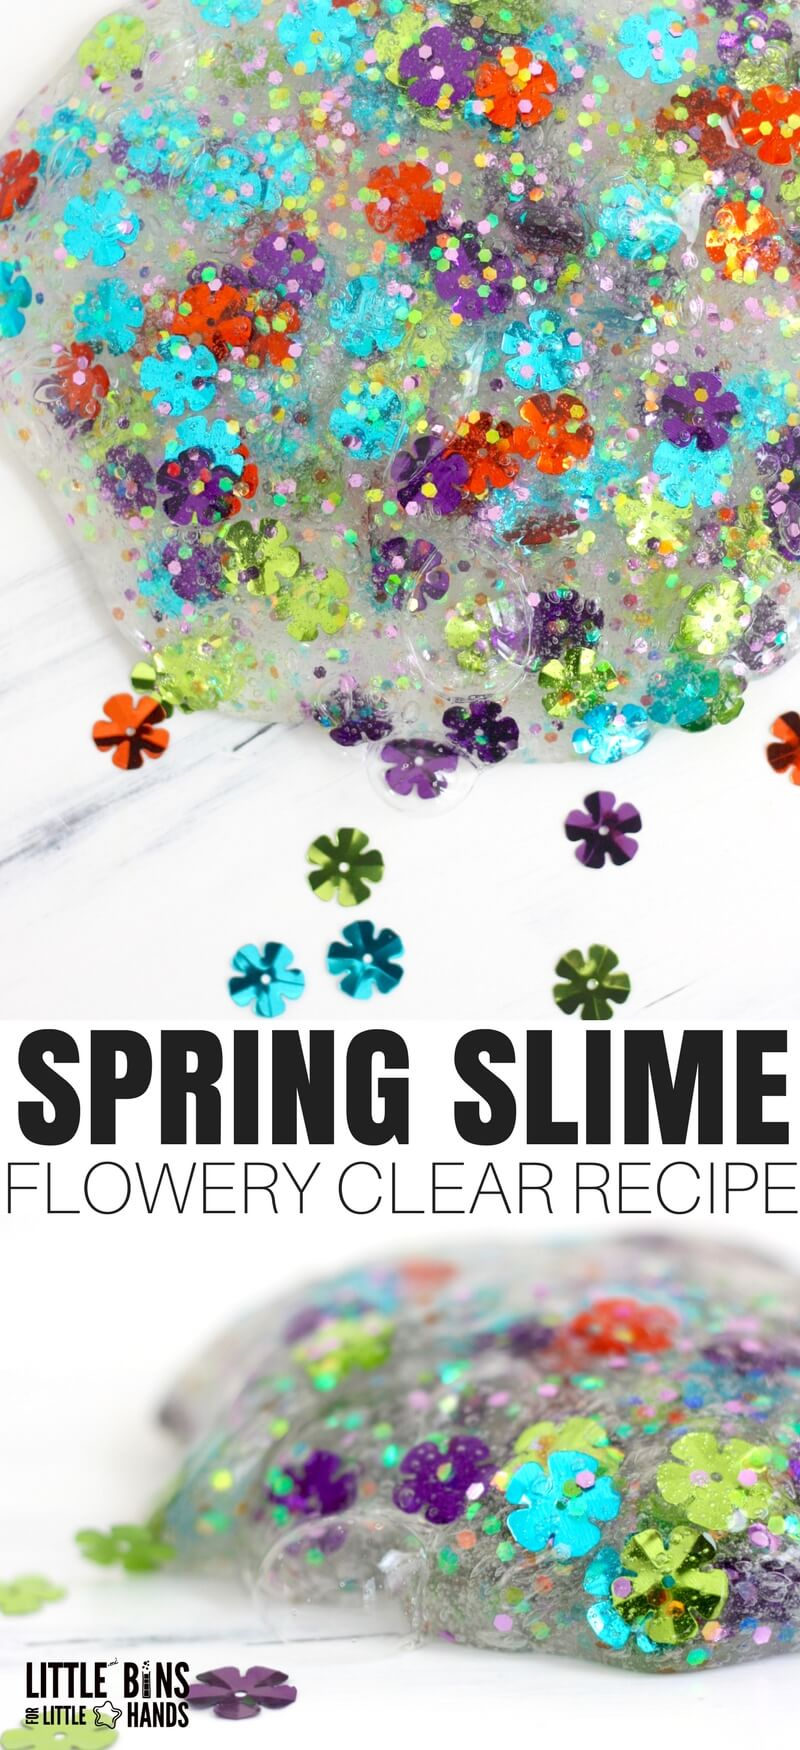 Are you waiting for spring and summer like I am. It's not here yet, but I can totally share a flowery spring slime recipe with you just the same. Learning how to make clear slime is the perfect way to showcase vibrant sparkly confetti for any season or holiday!